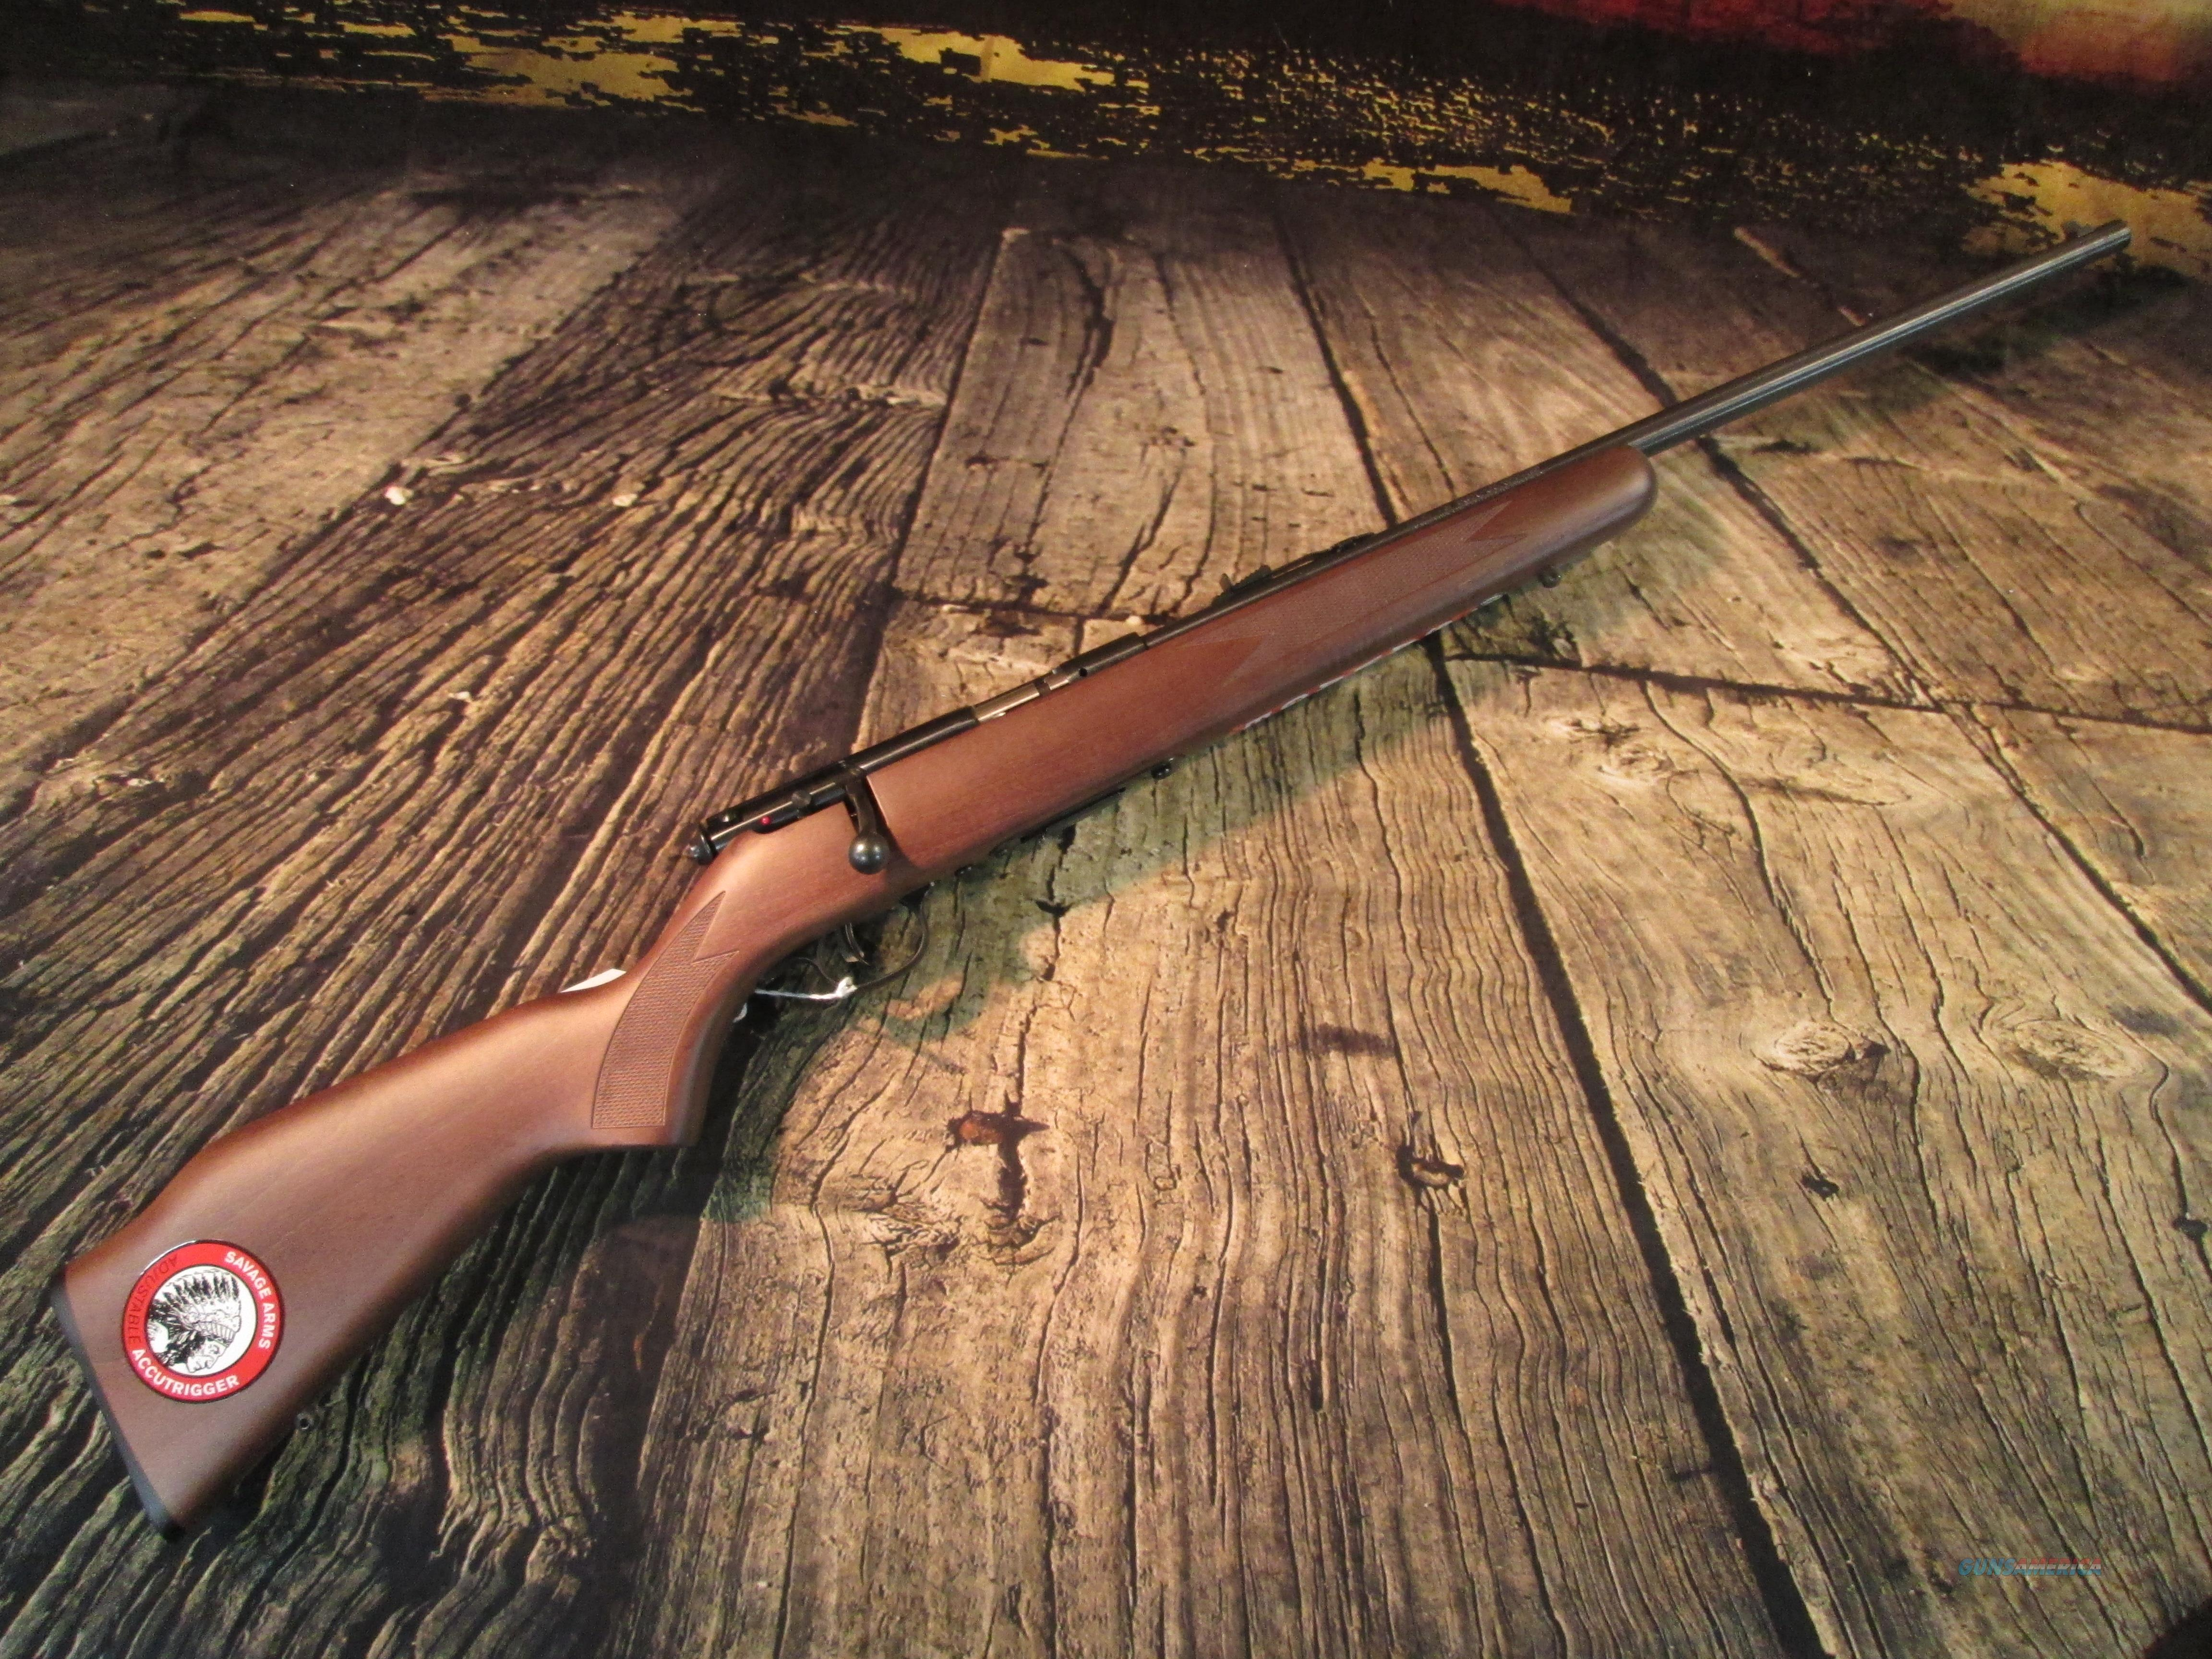 SAVAGE 93G W/ ACCUTRIGGER AND WOODEN STOCK .22 MAG NEW (90700)   Guns > Rifles > Savage Rifles > Rimfire